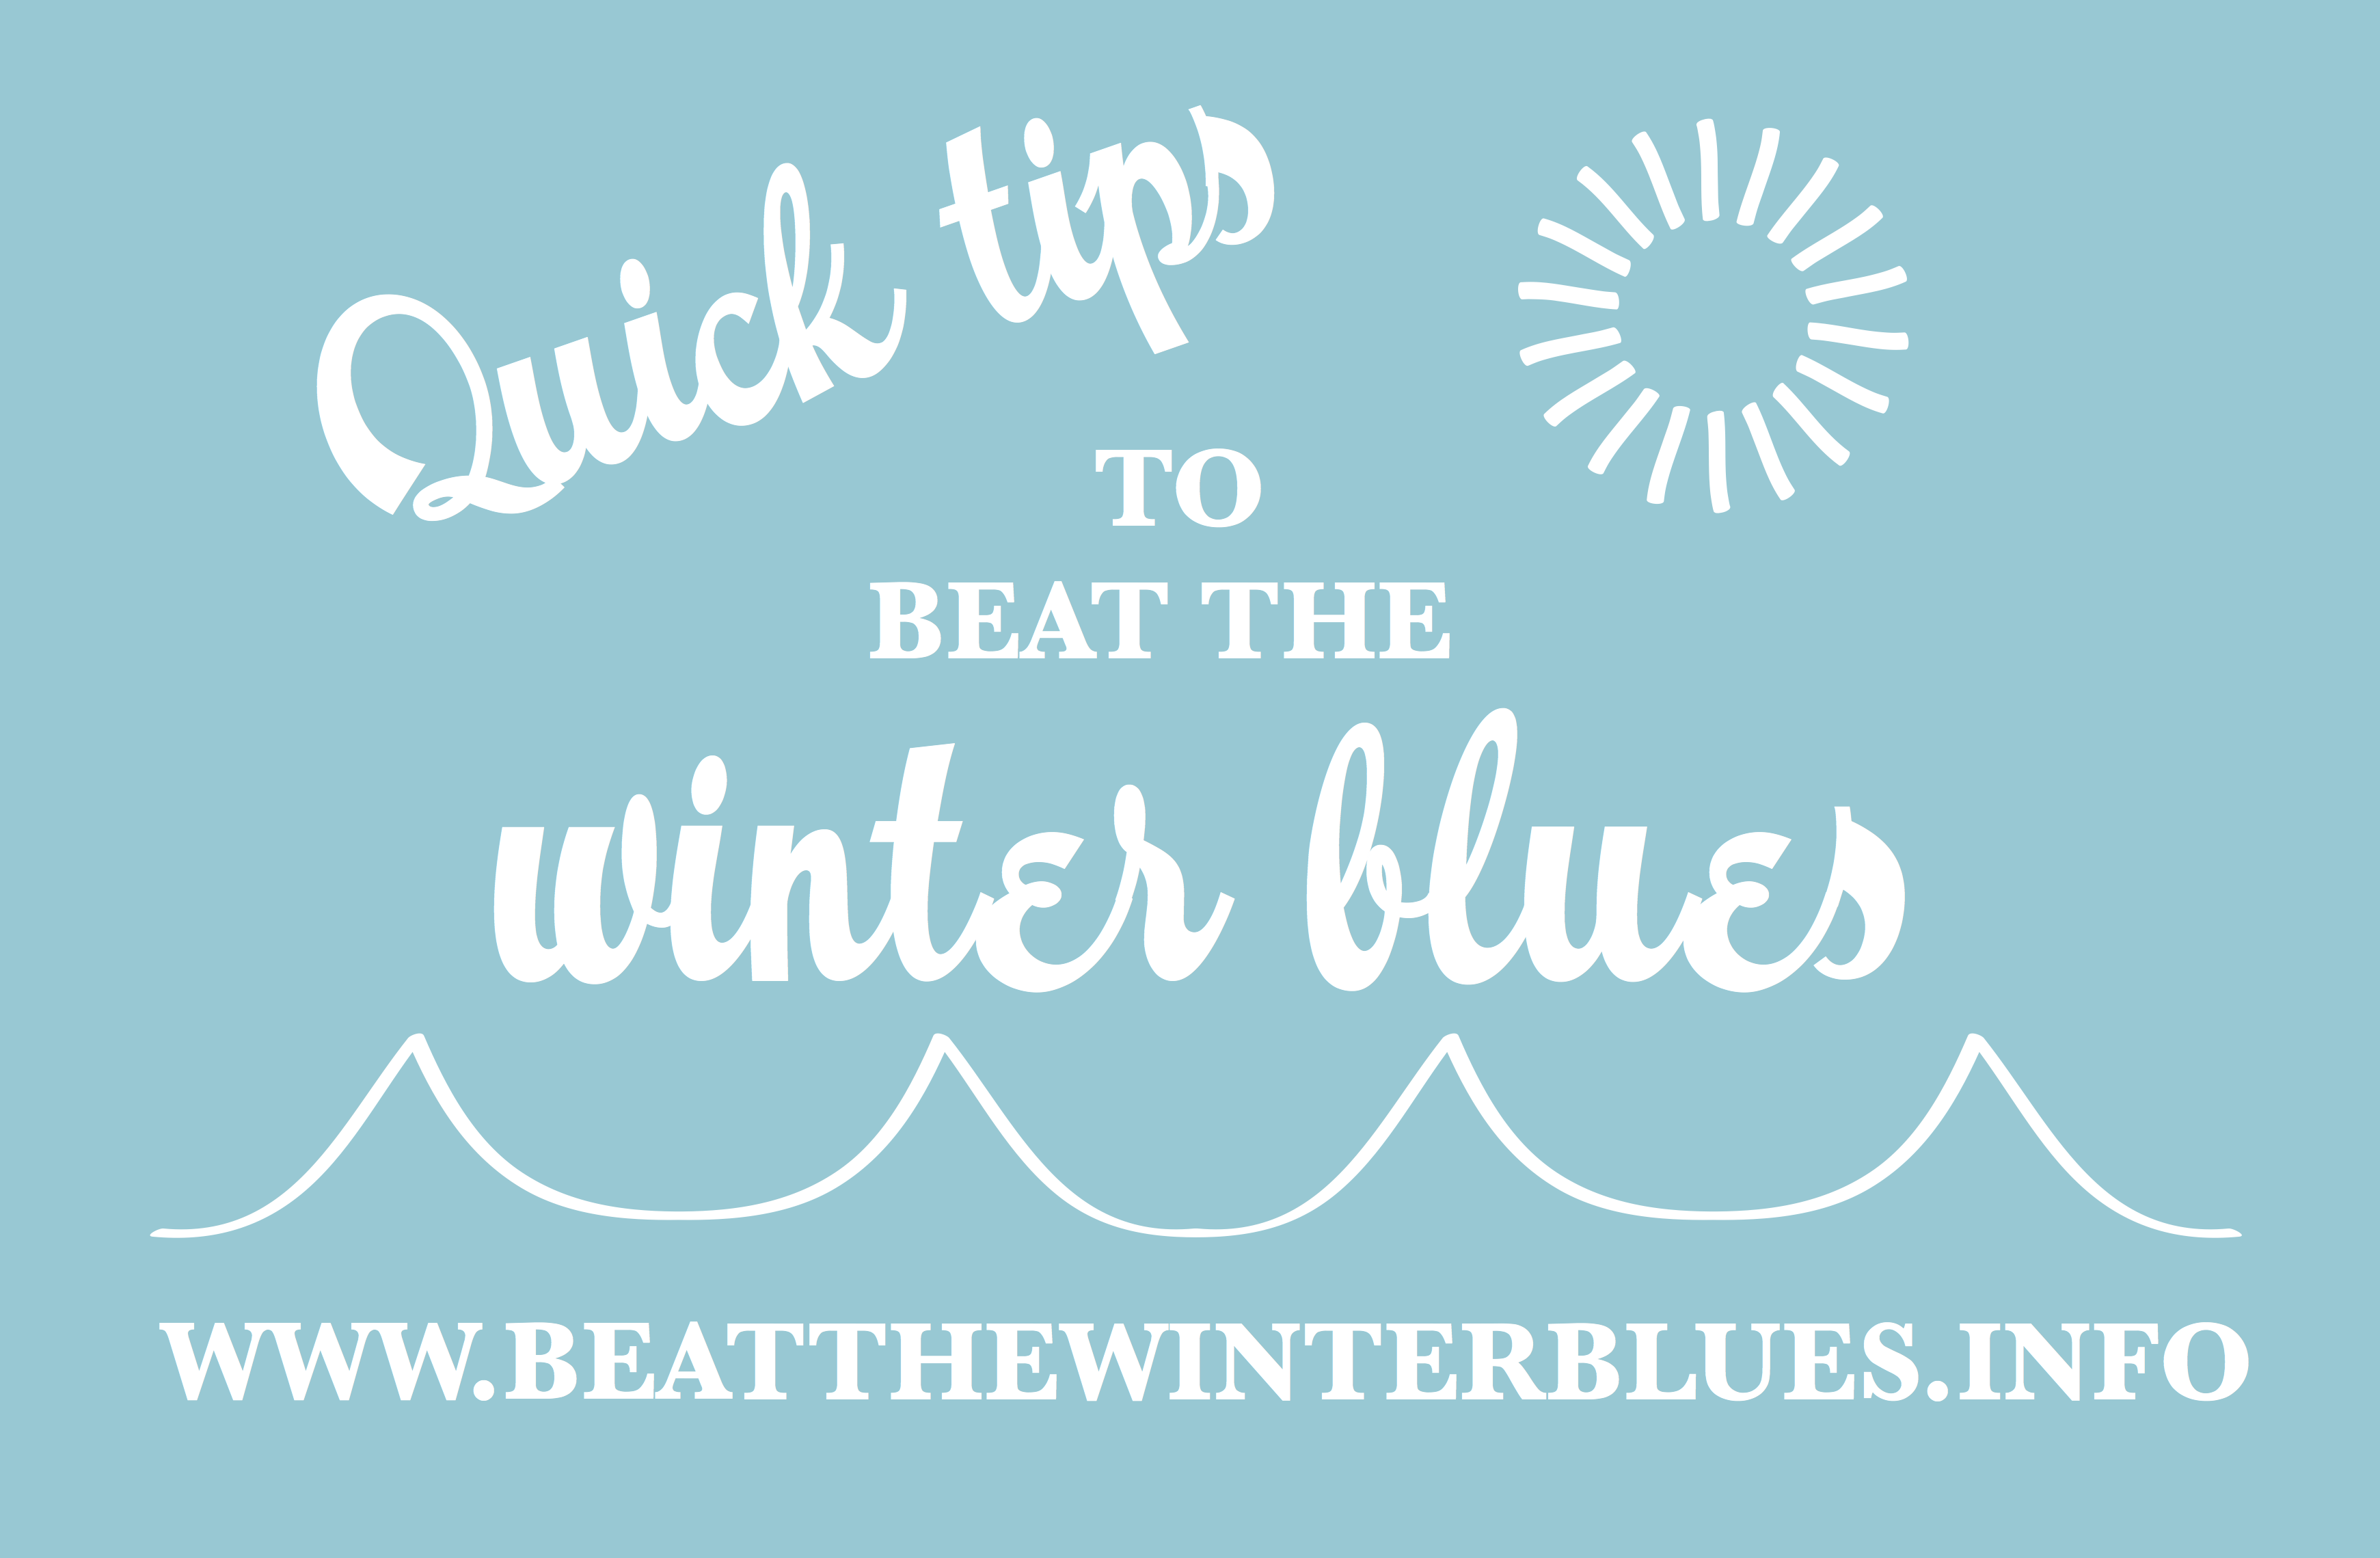 Quick tips to beat the winter blues